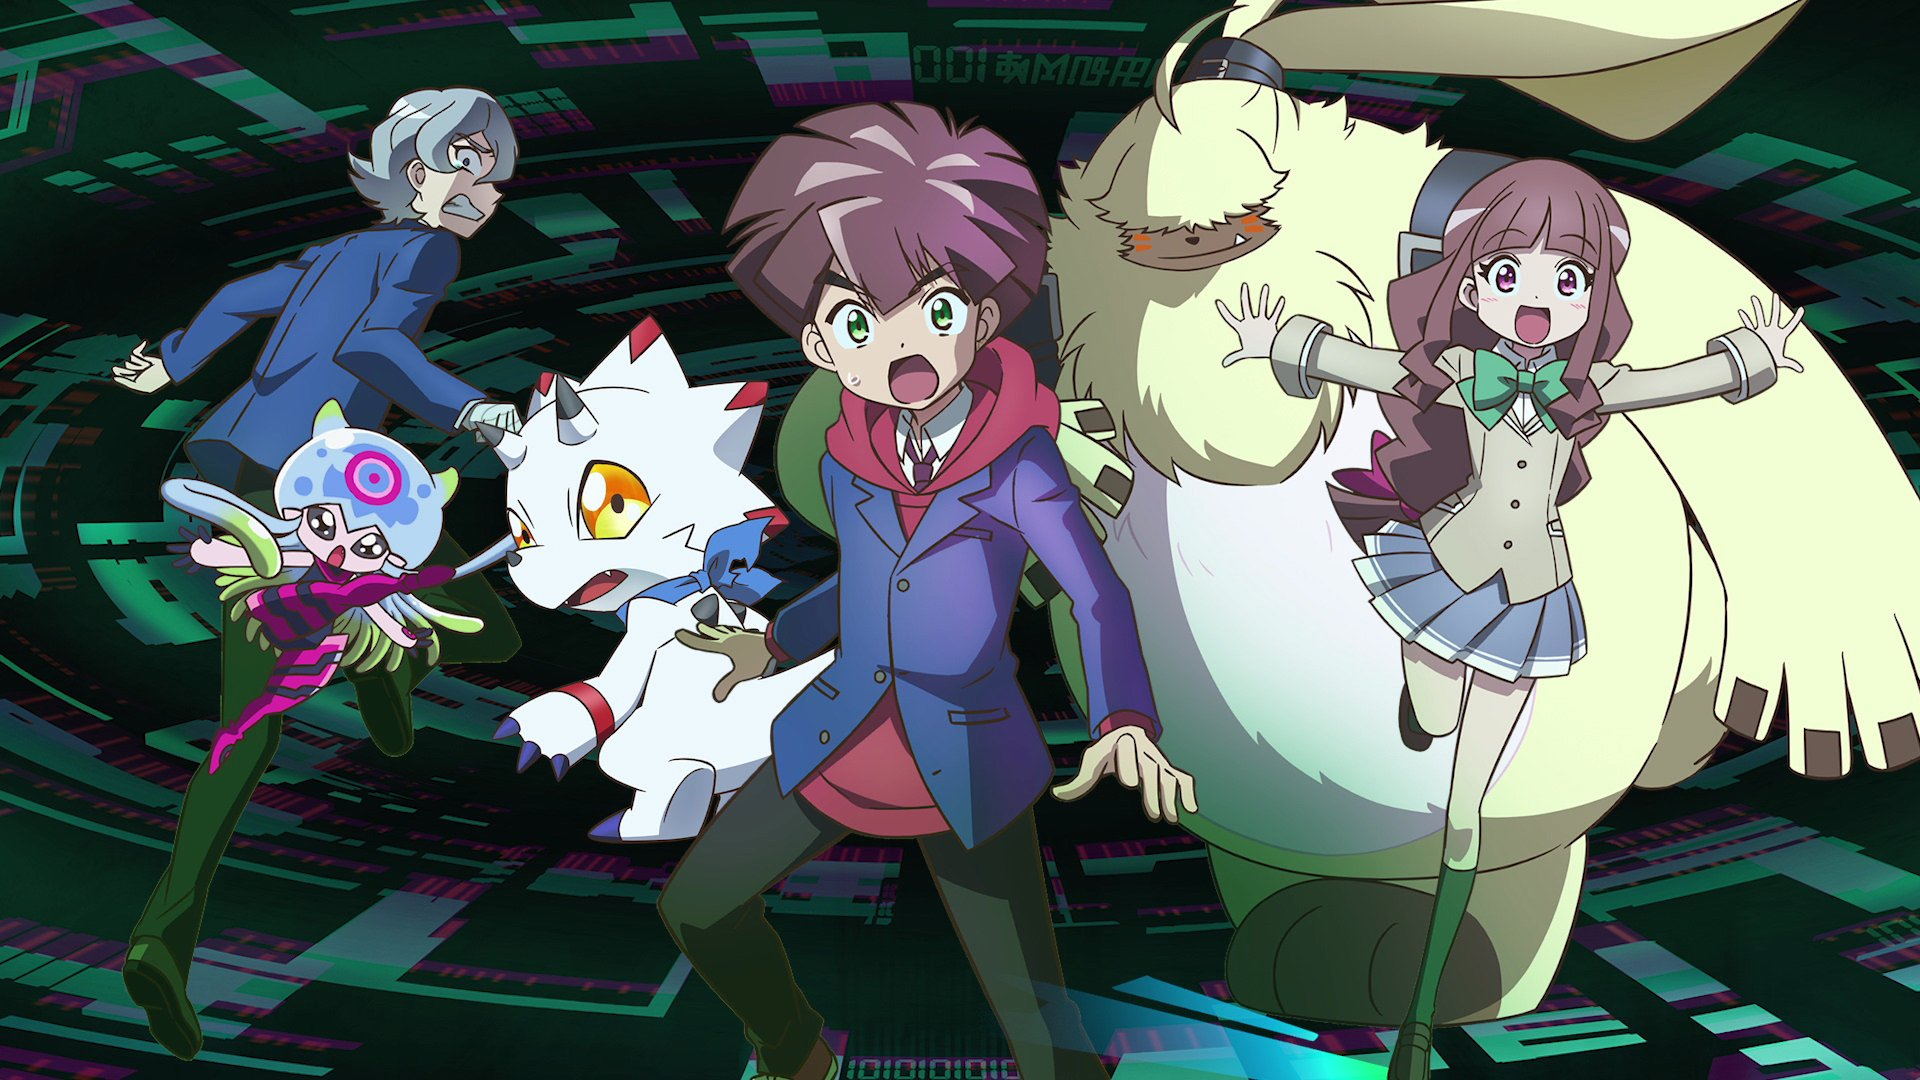 'Digimon Ghost Game' Episode 1 review - Aaahh!!! Digital Monsters